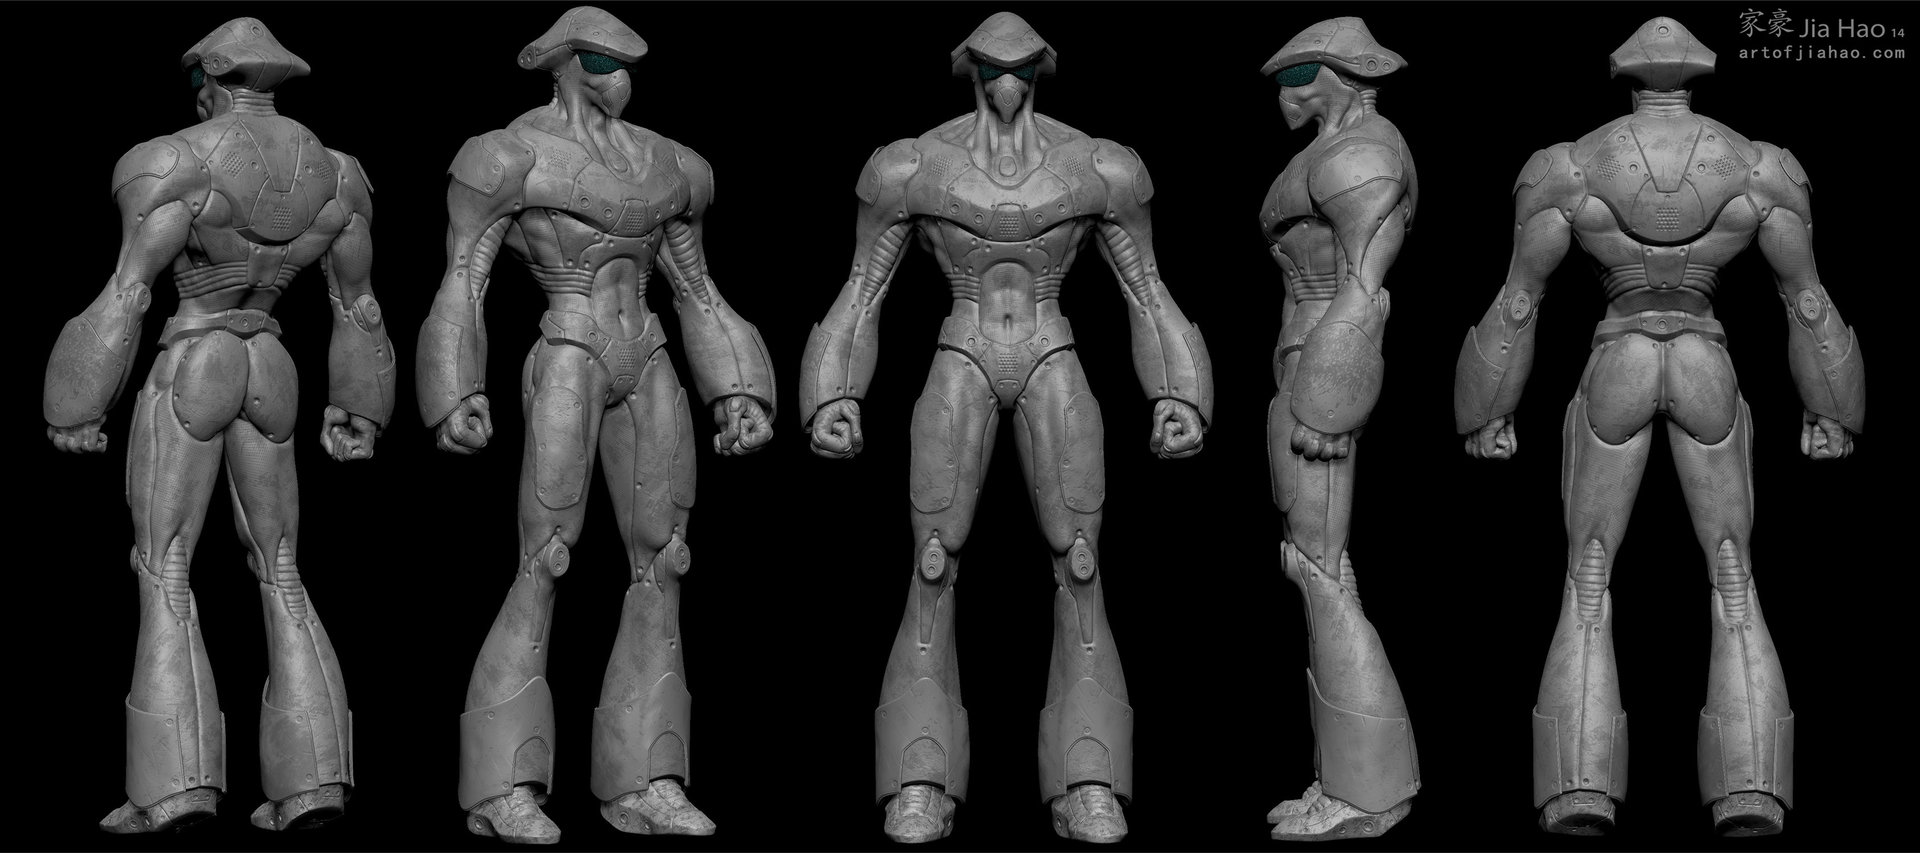 Jia hao 2014 02 cyberboxer views sculpt